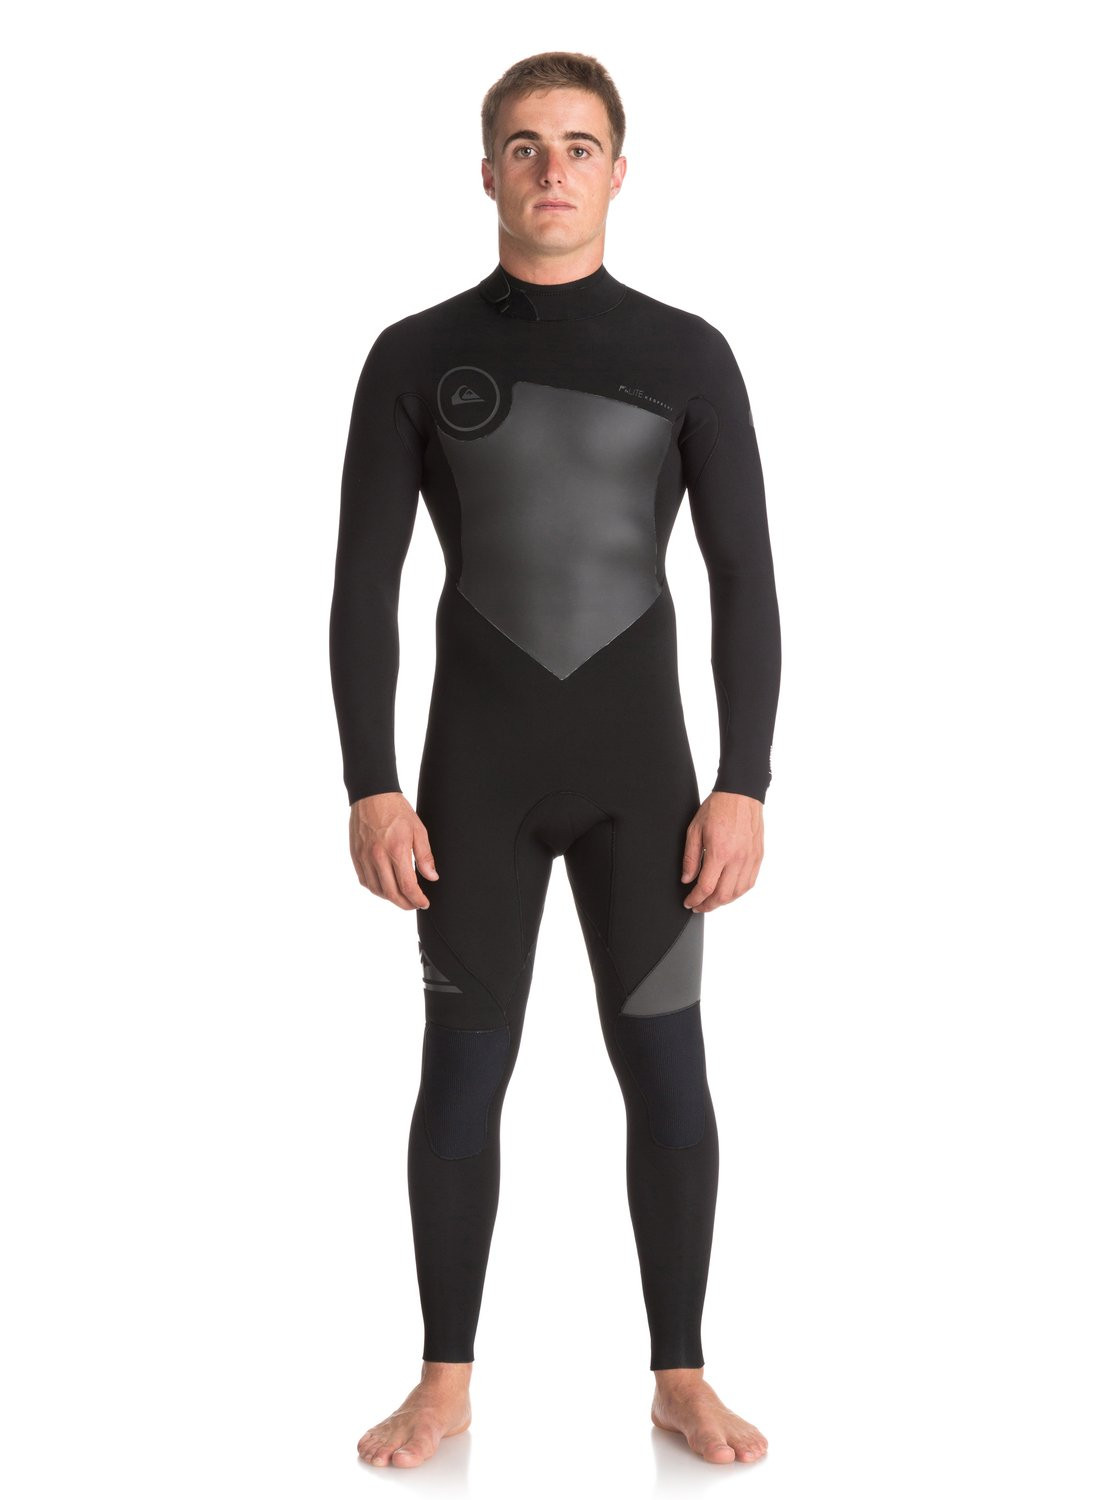 QUIKSILVER SYNCRO SERIES WETSUIT